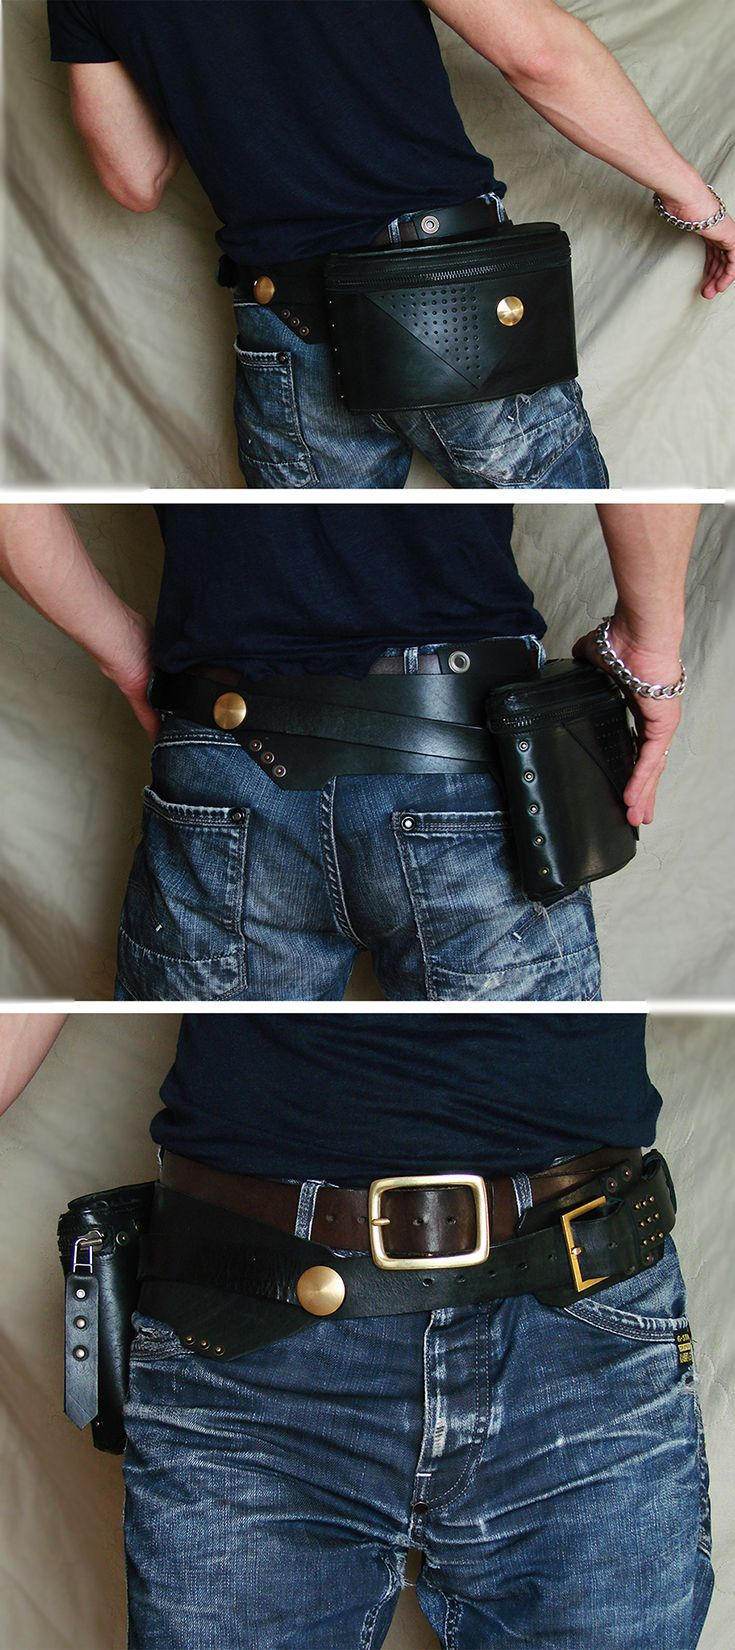 Waist bag,  Mad Max,  military  man  holster,  moto,  tactical  battle men,  gift, pocket belt,  hip bag, caferacer sportster biker, steampunk, leathercraft, tactical gear, EDC motorcycle fashion style, Post apocalyptic Goa, burning man  festivalleathercraft tacticalgear, EDC motorcycle fashion style, Post apocalyptic Goa, burning man  festival